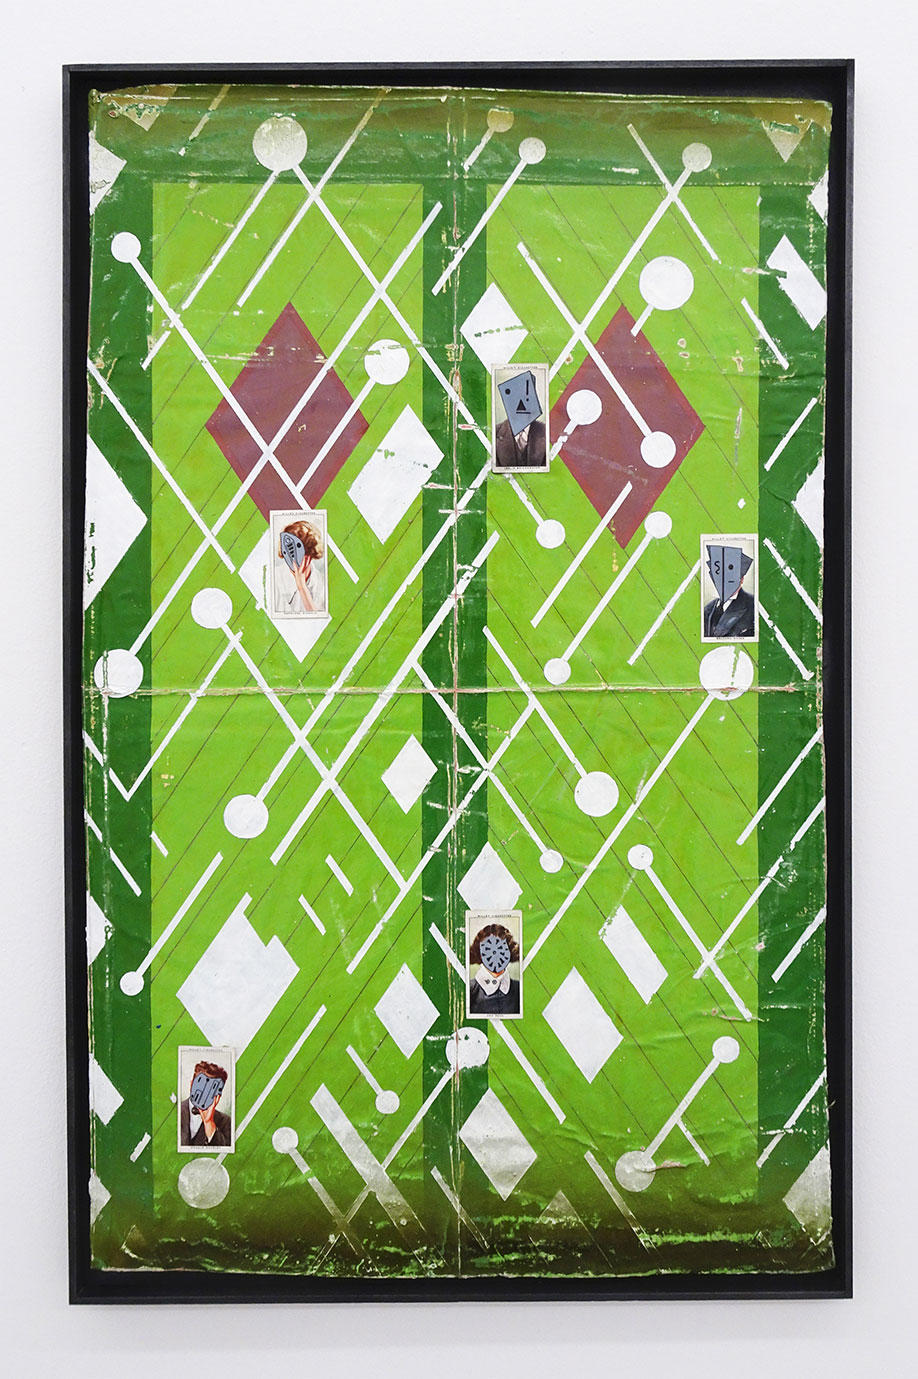 <b>Title: </b>FOND FAREWELL<br /><b>Year: </b>2019<br /><b>Medium: </b>enamel, acrylic, varnish, ink and cigarette cards in graphite and pine frame<br /><b>Size: </b>76.5 x 48.5 2cm